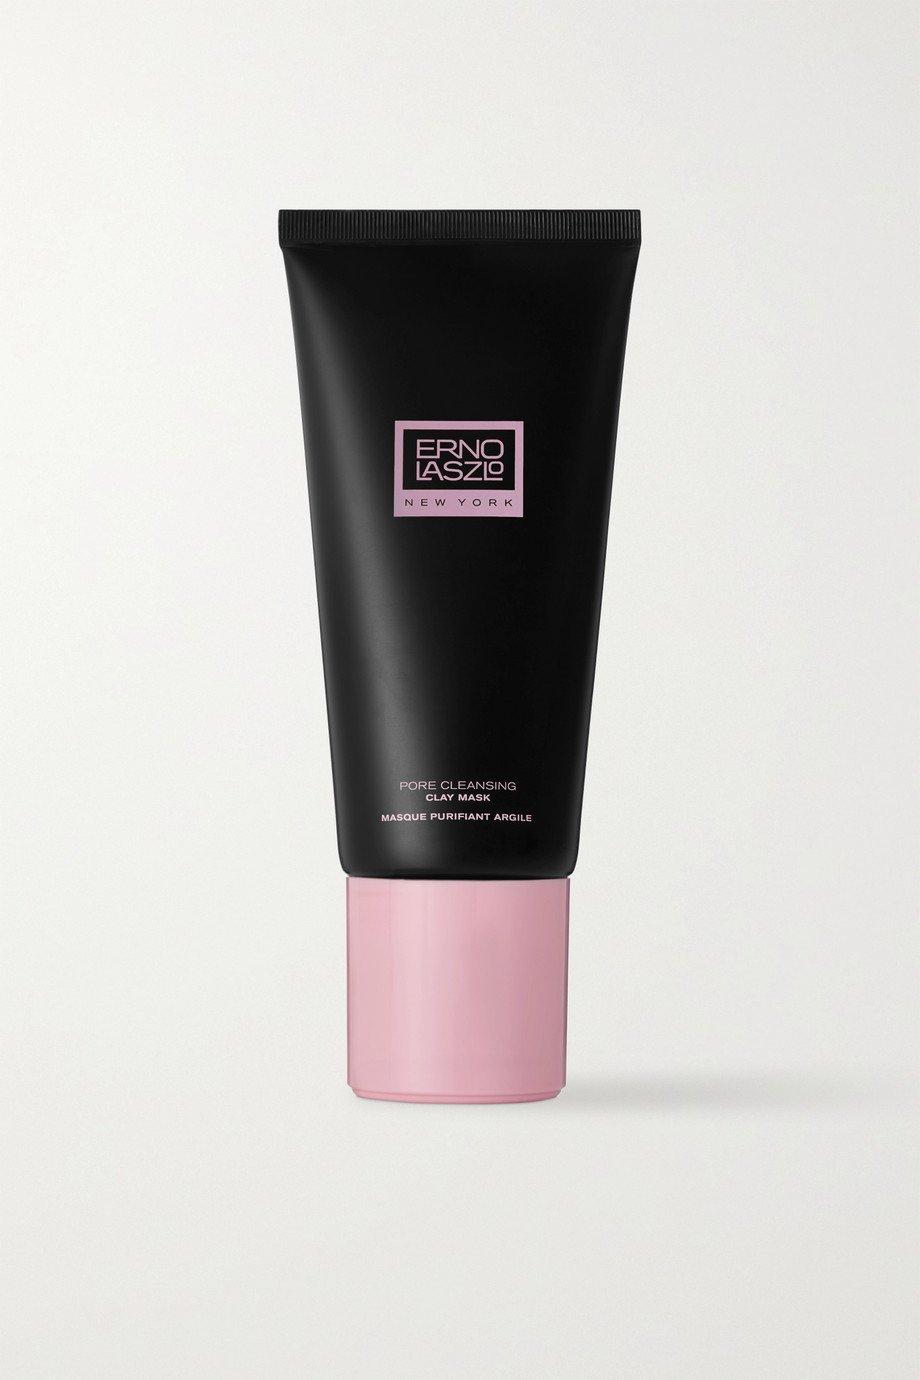 ERNO LASZLO Pore Cleansing Clay Mask, 100ml